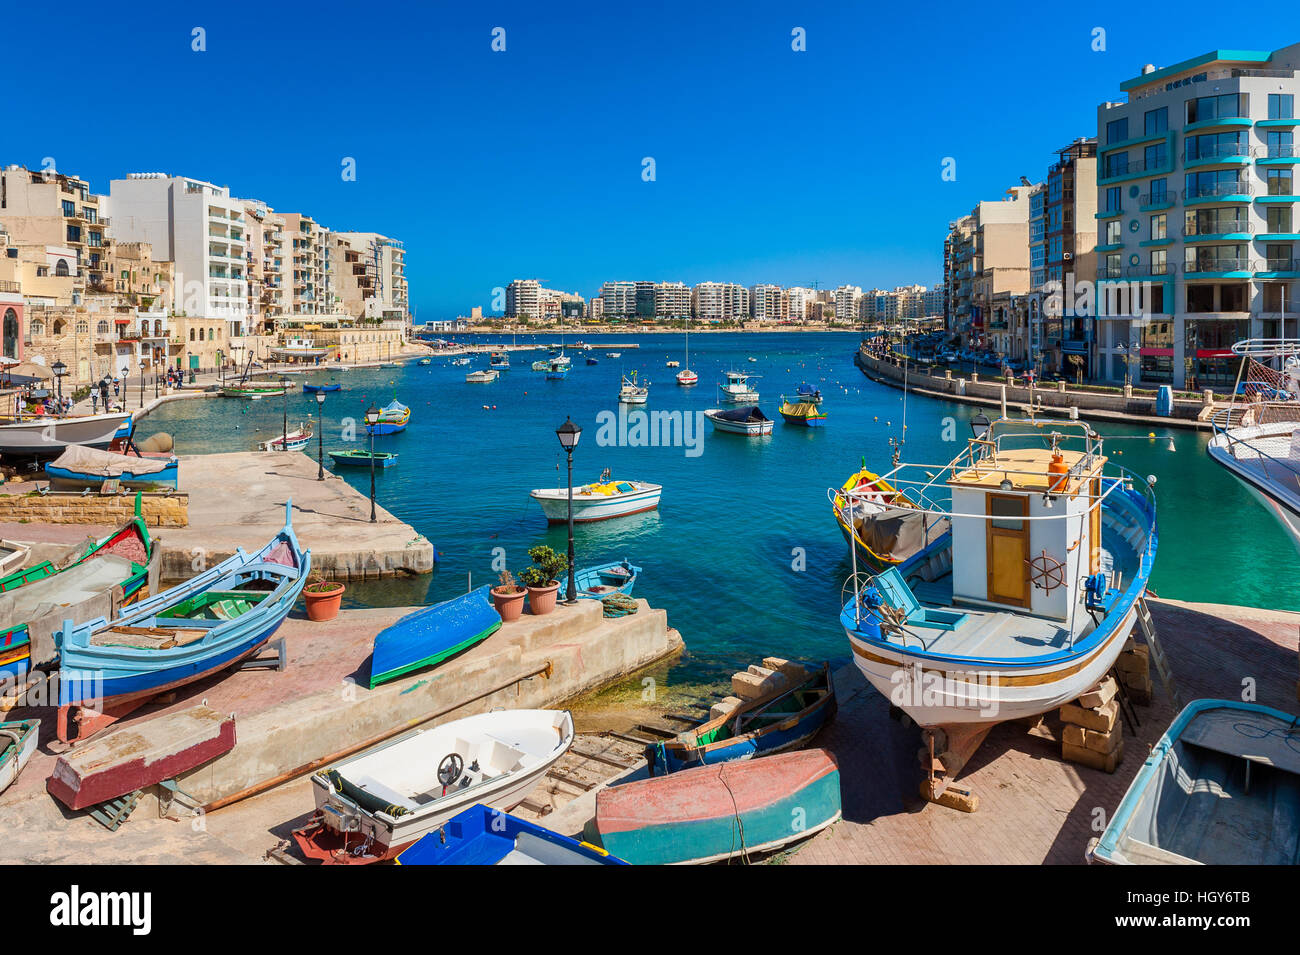 St. Julian's Bay Malta - Stock Image